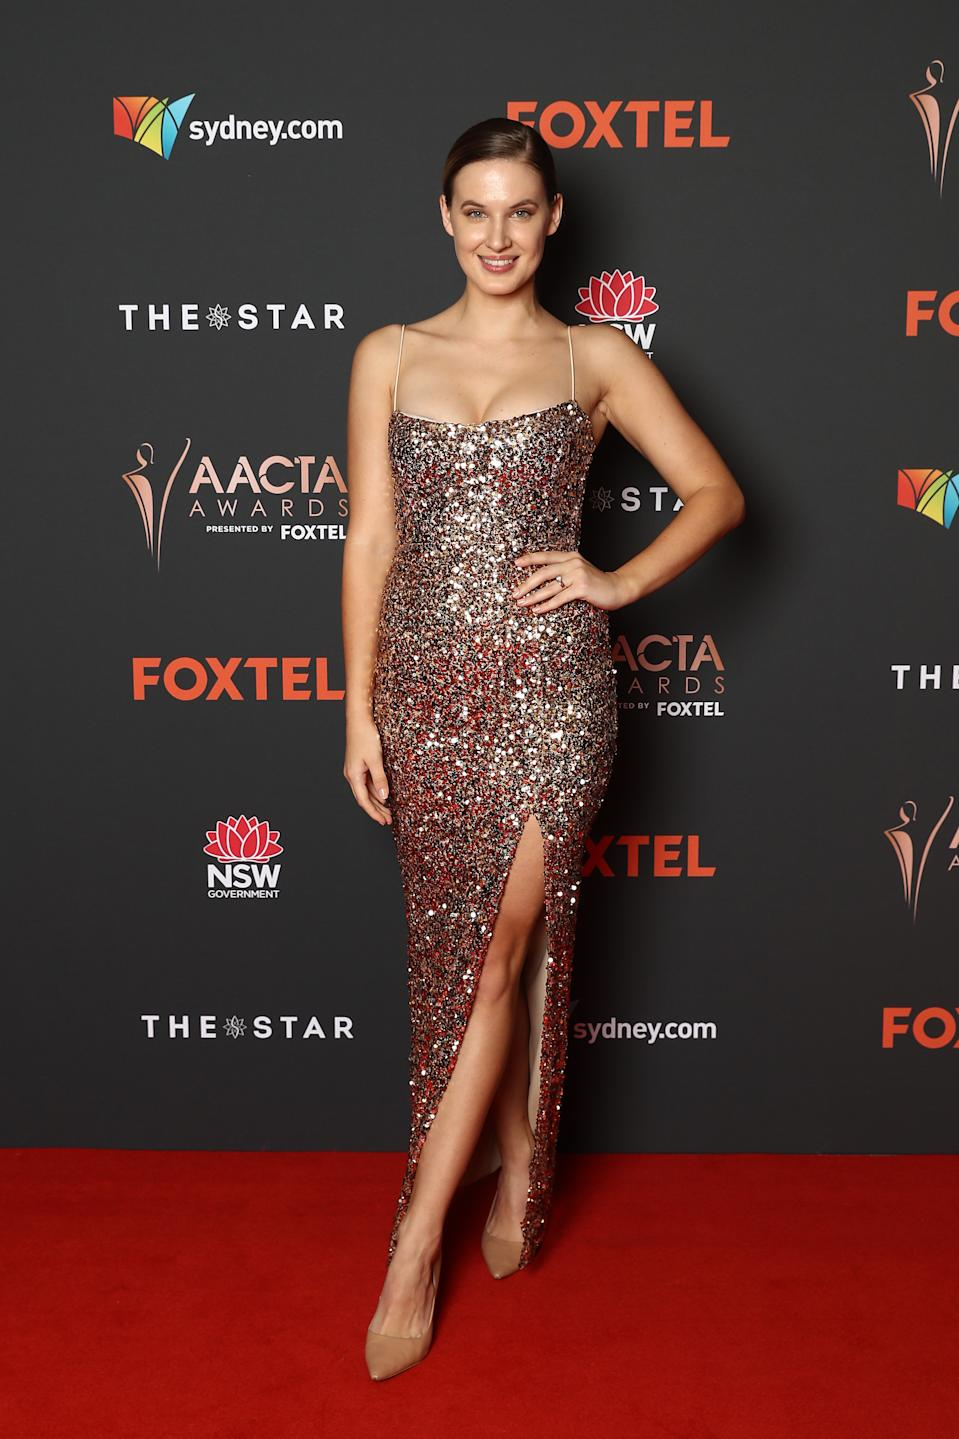 Bronte Bailey arrives ahead of the 2020 AACTA Awards presented by Foxtel at The Star on November 30, 2020 in Sydney, Australia.